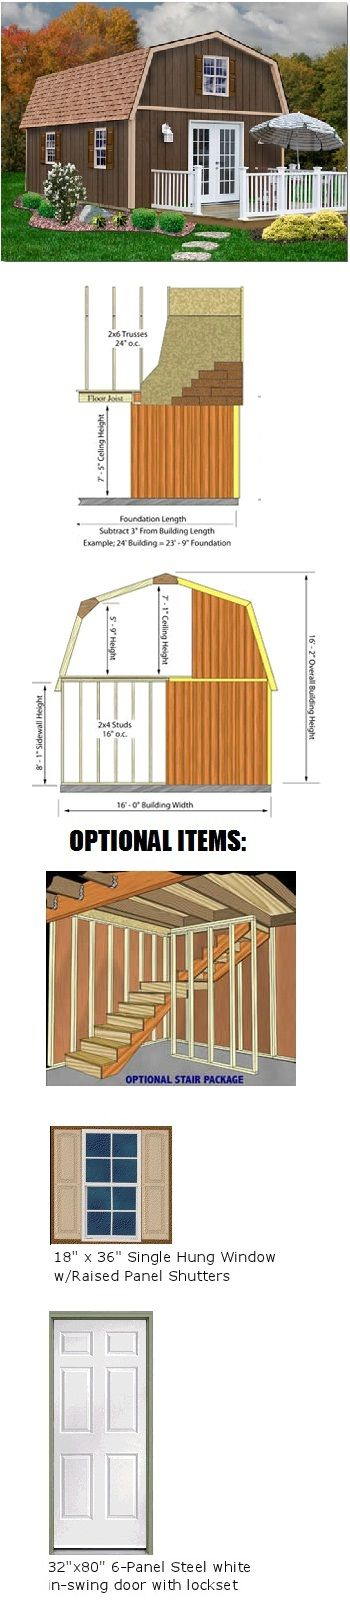 Image Result For X Shed Plans With Lofta